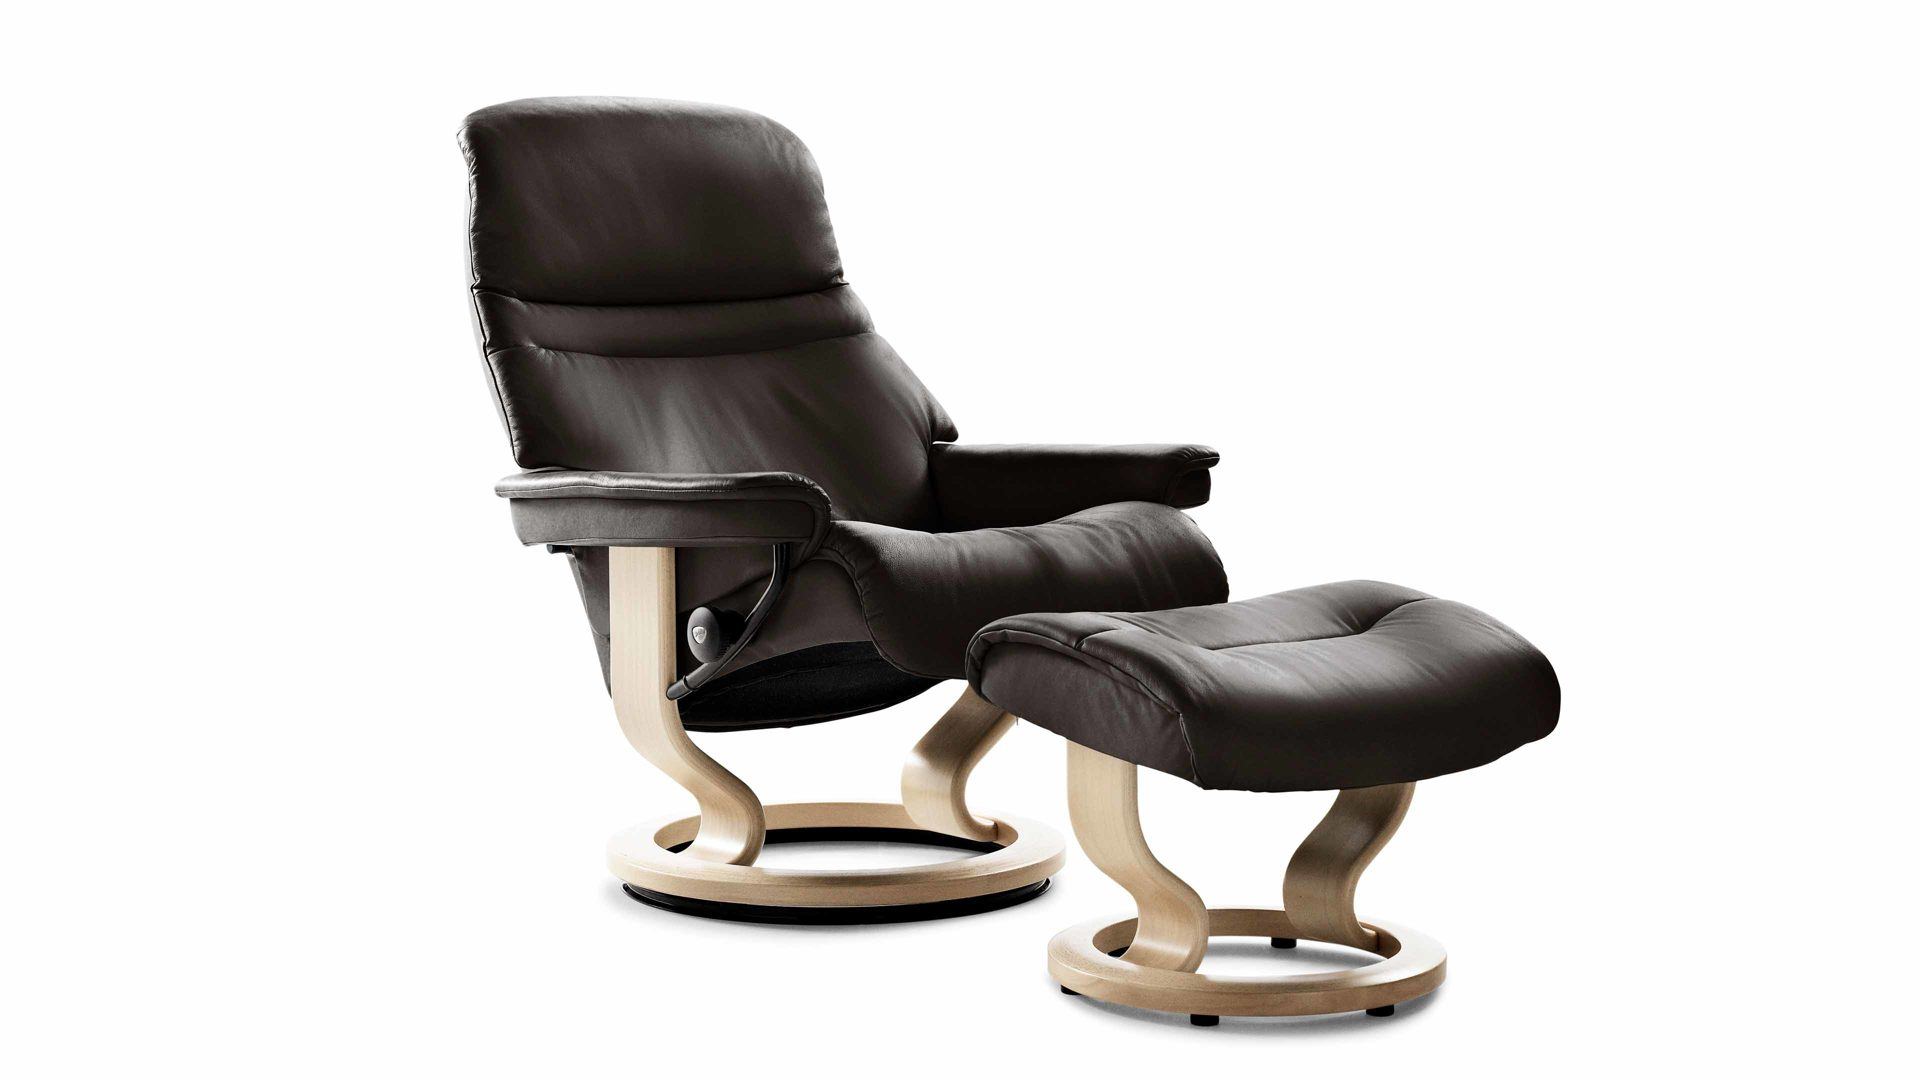 Stressless Sessel Sunrise.html Möbelhaus Franz Ohg Möbel A Z Sessel Hocker Stressless